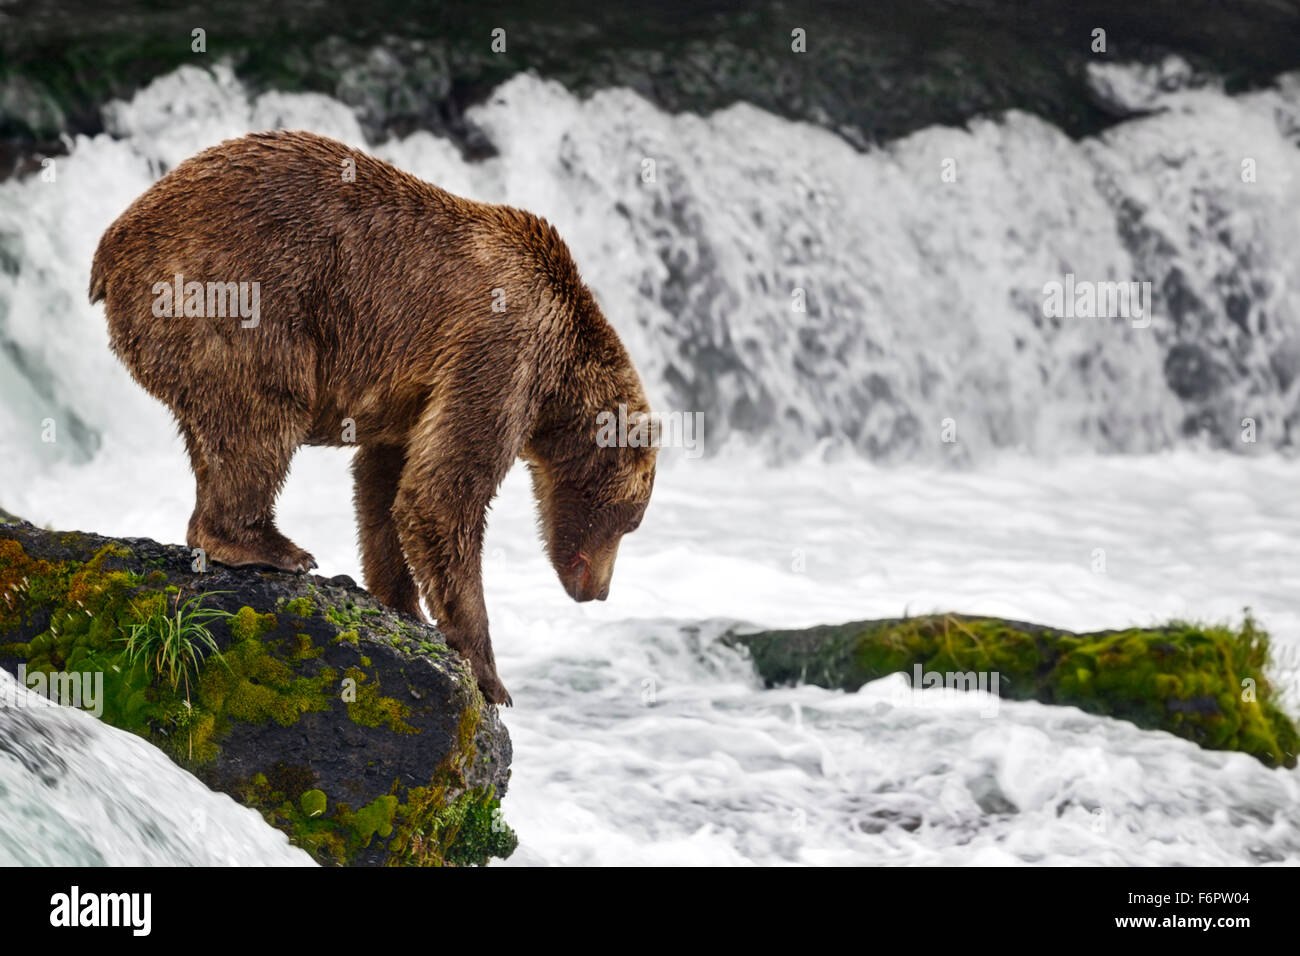 A subadult brown bear steps down from the slippery rock into the falls to take up his fishing spot, Brooks Falls - Stock Image